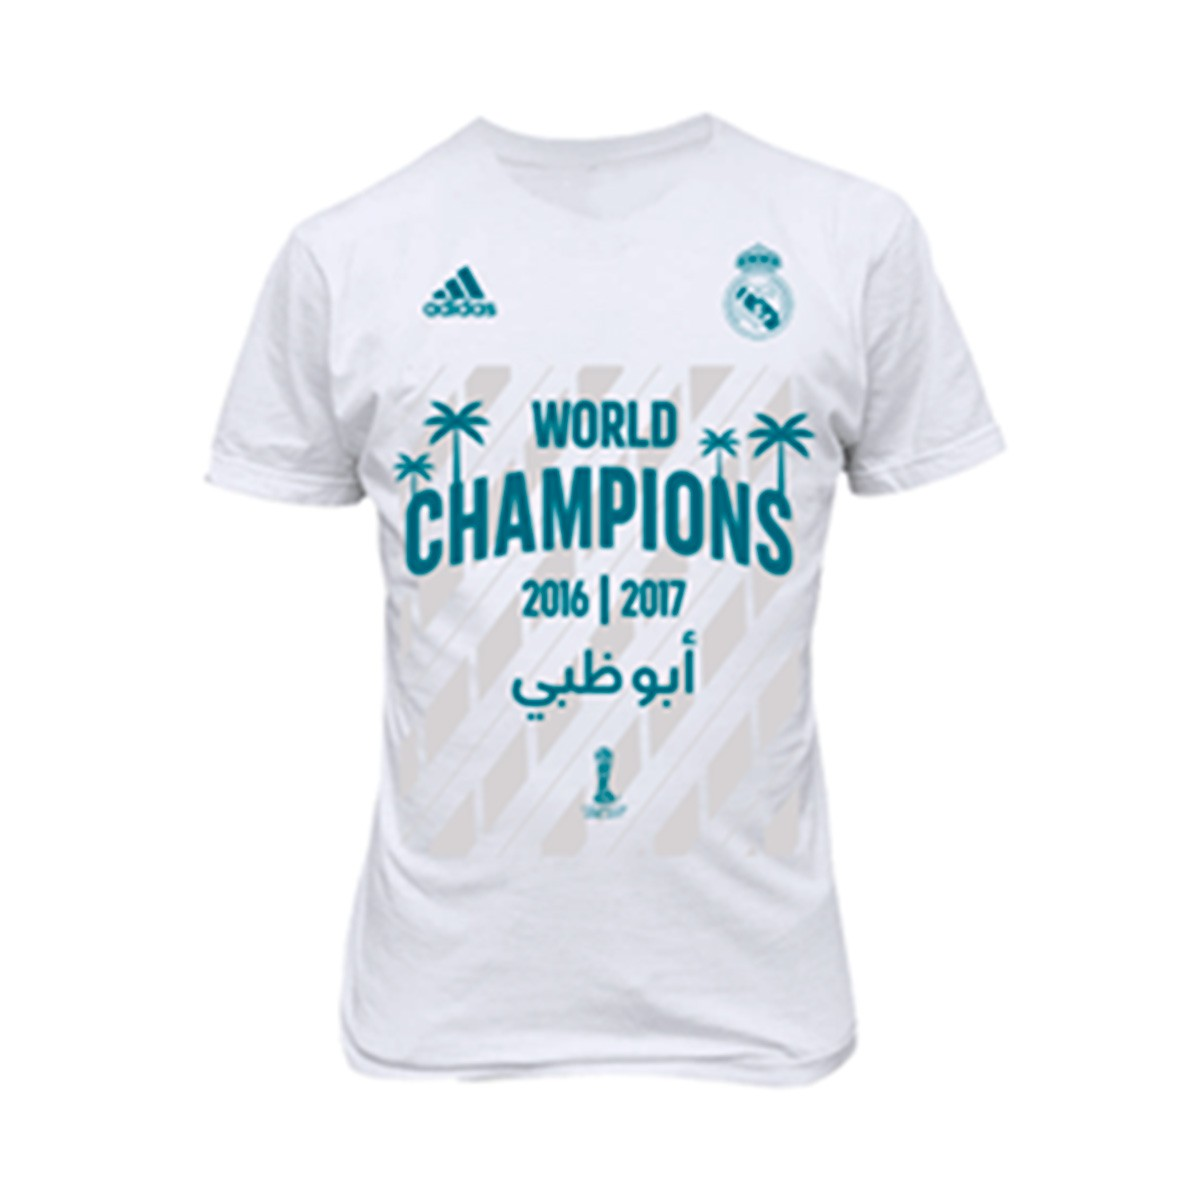 2ffc5456a97a9 Camiseta adidas Real Madrid FIFA World Champion 2017 White - Tienda de  fútbol Fútbol Emotion